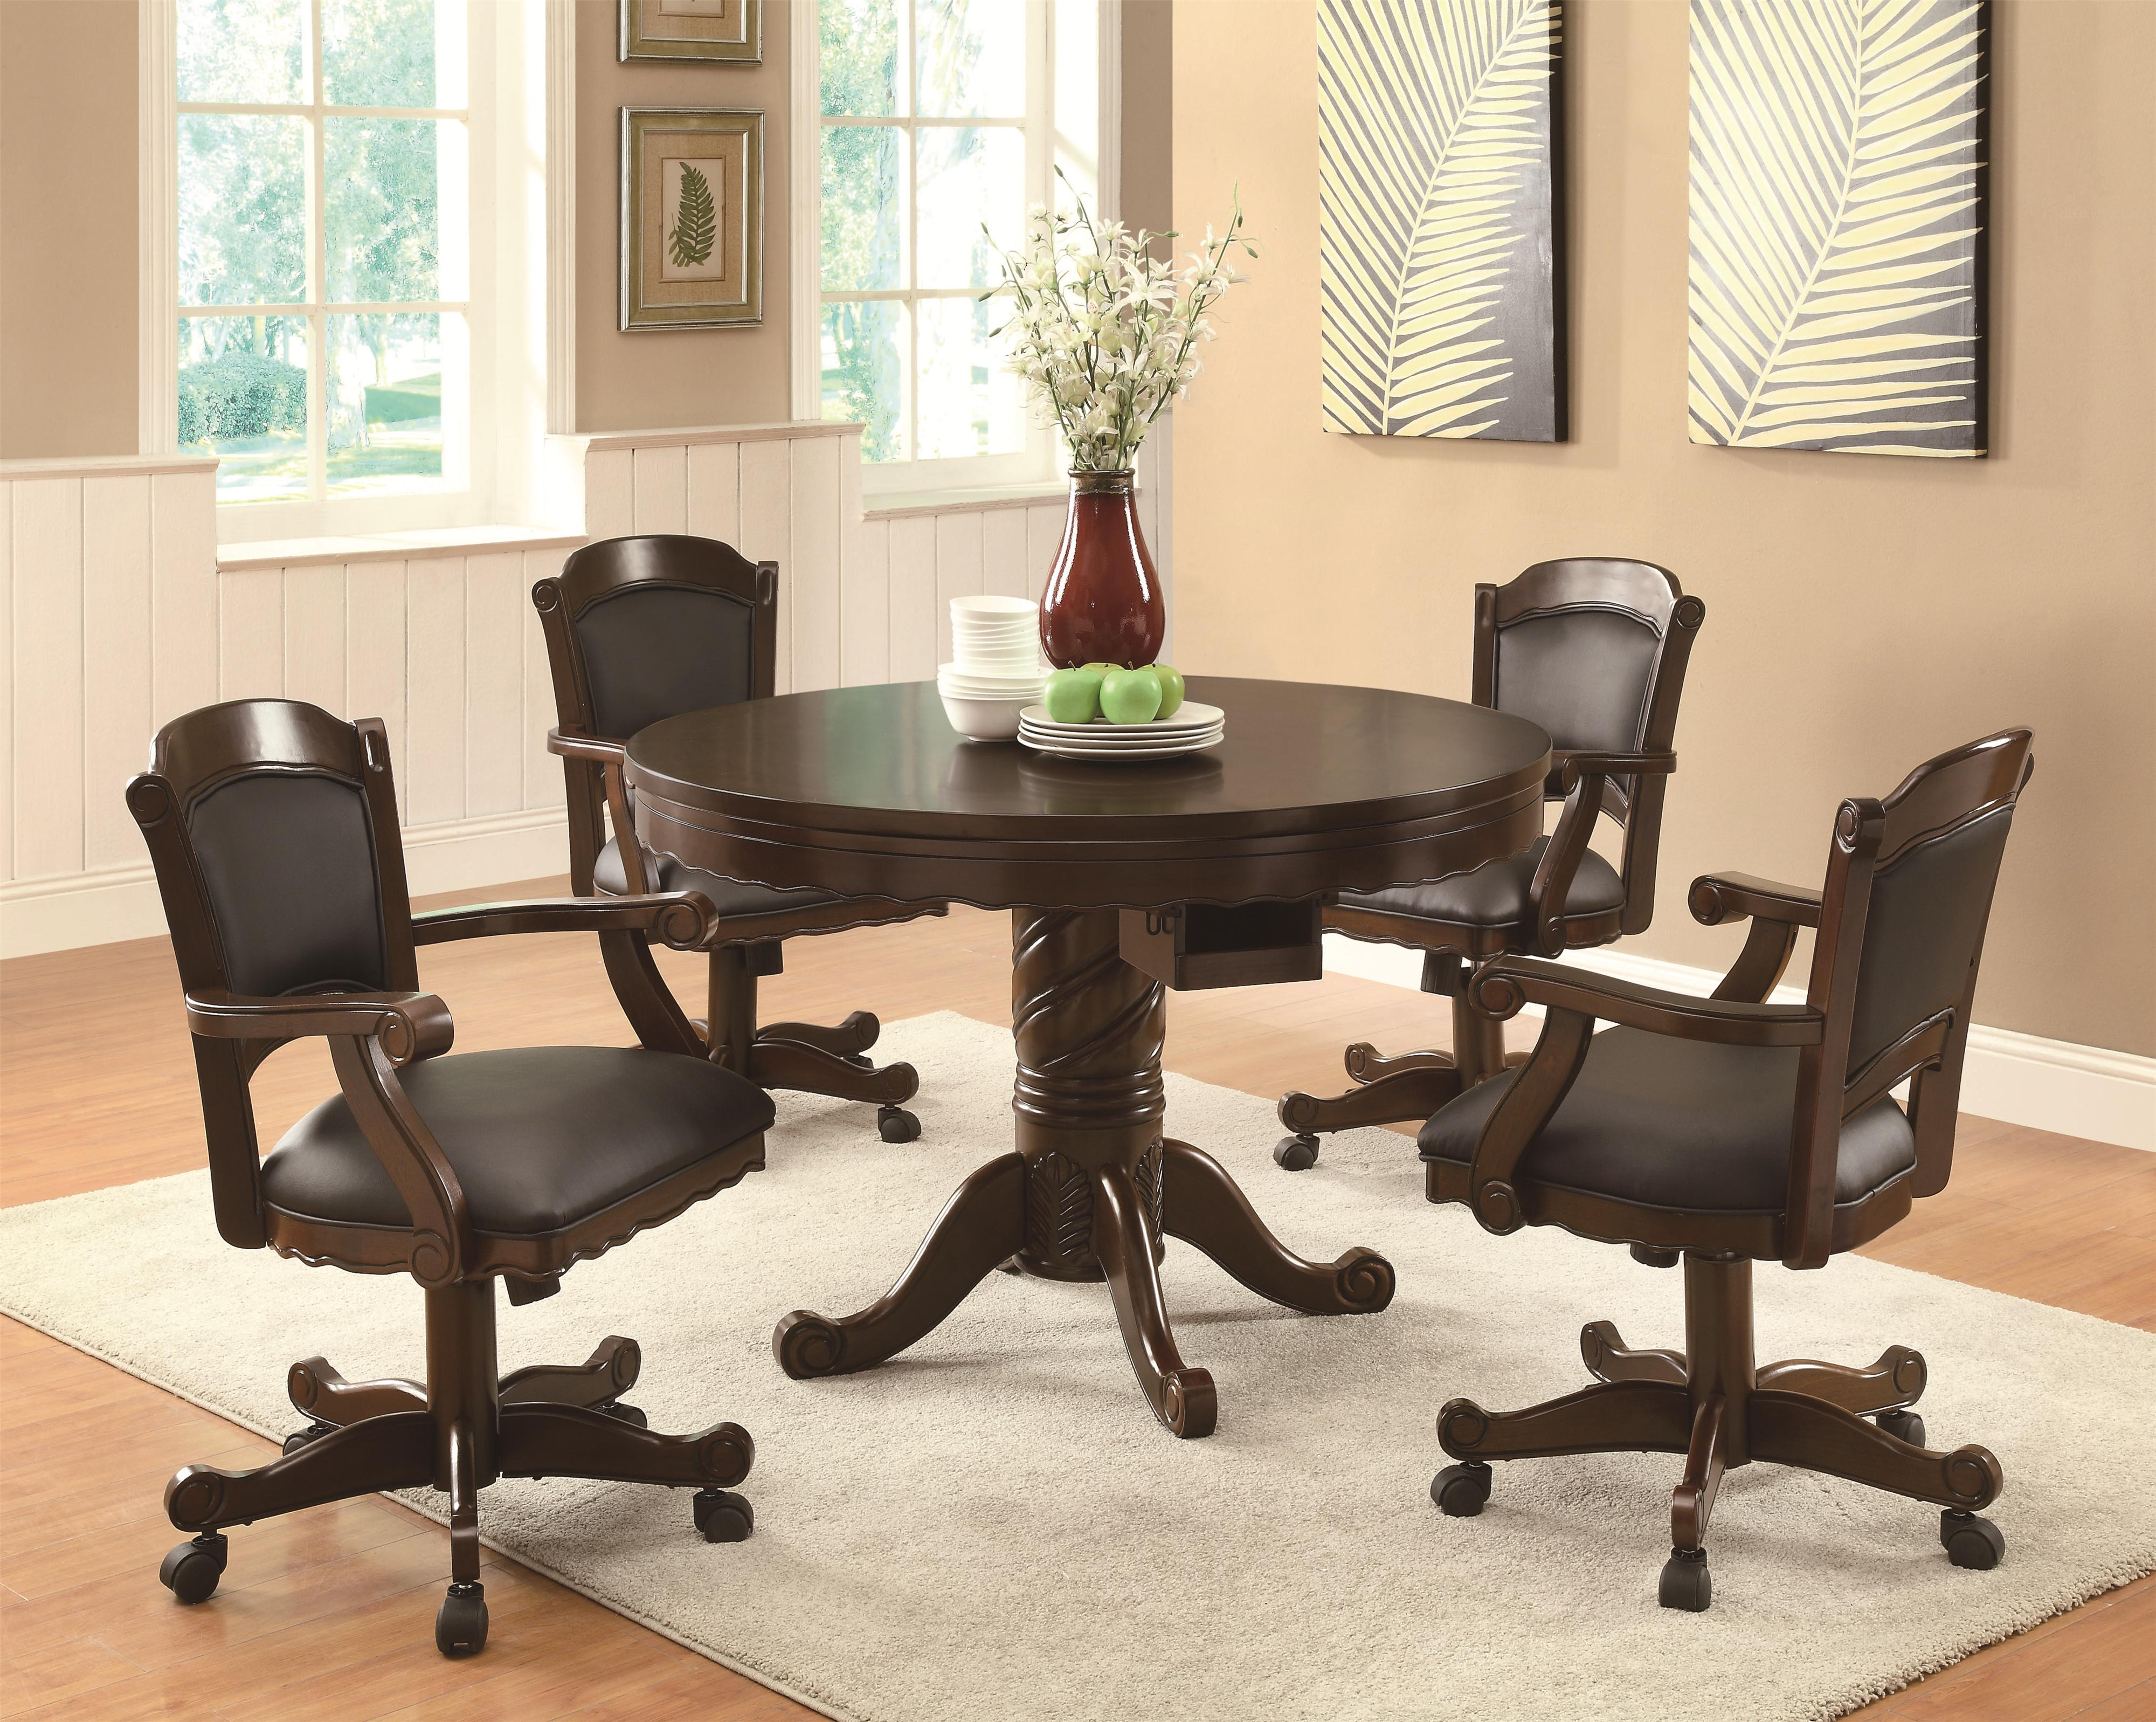 Turk 5 Piece Game Table Set by Coaster at Northeast Factory Direct